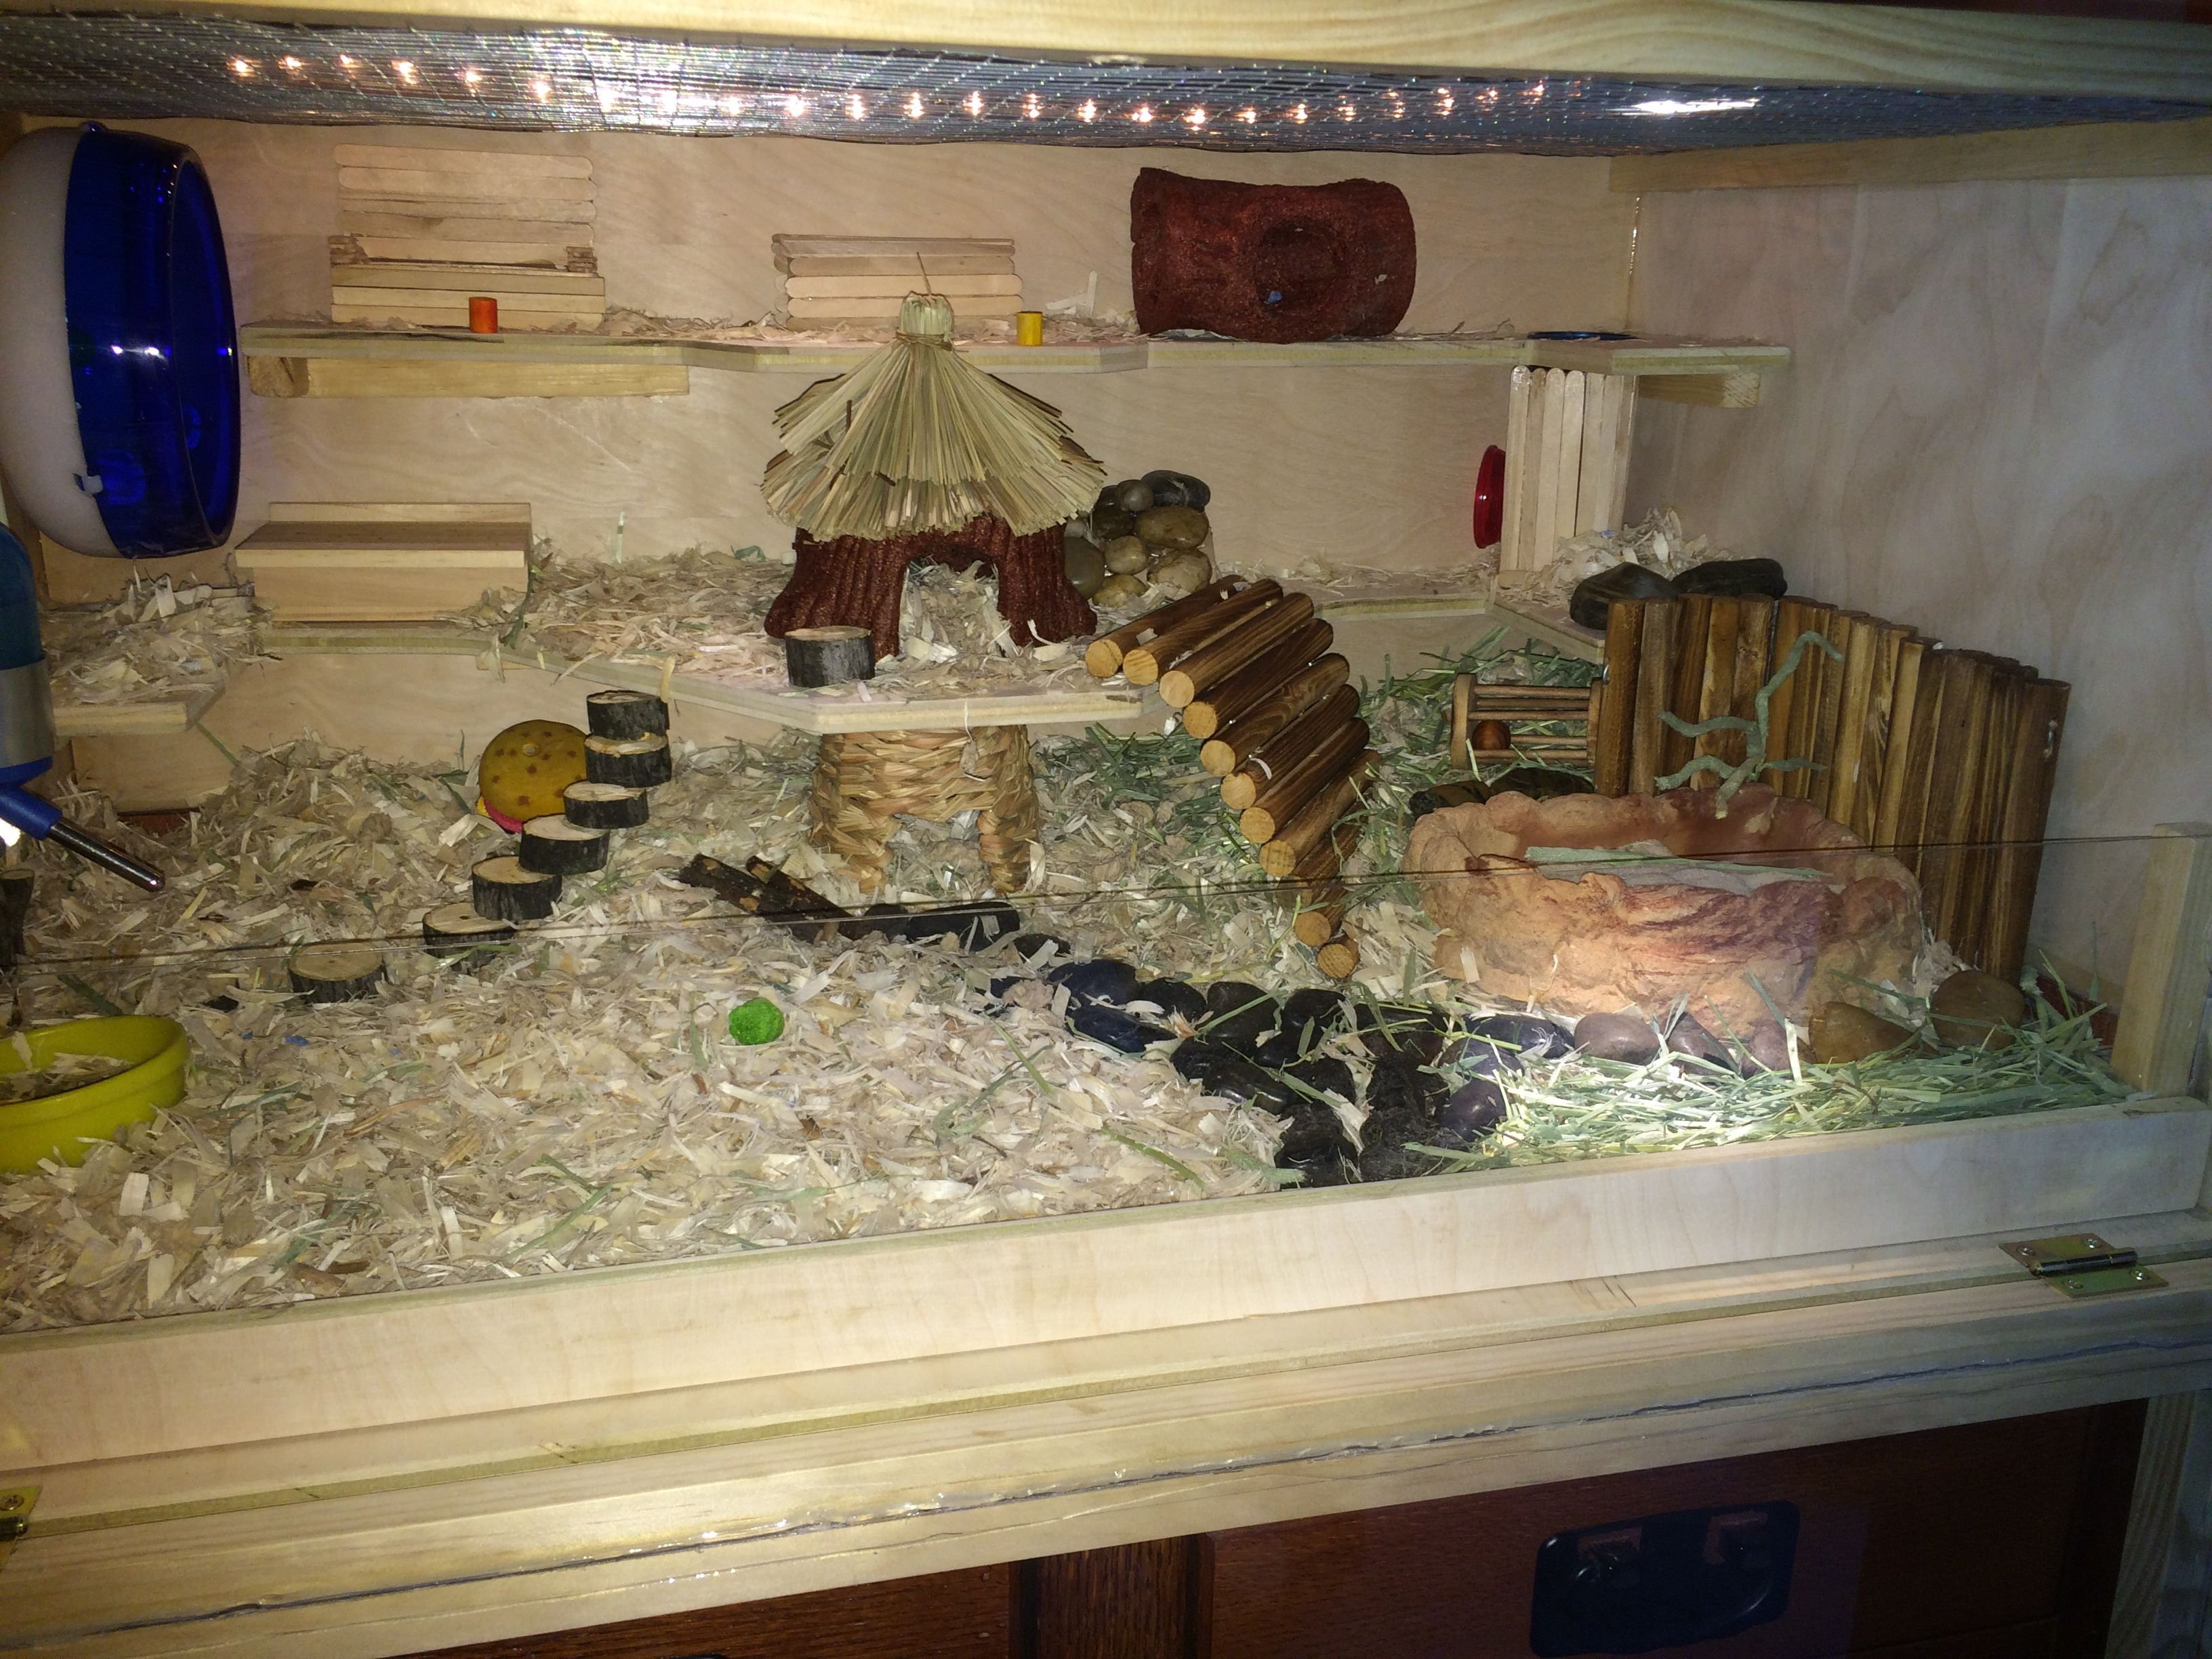 Diy Wood Hamster Cage 2 Door 2 Level Posted In Supplies Accessories My 10 Yr Old Son Just Loves His Ha Hamster Cage Spring Break Kids Hamster Cages